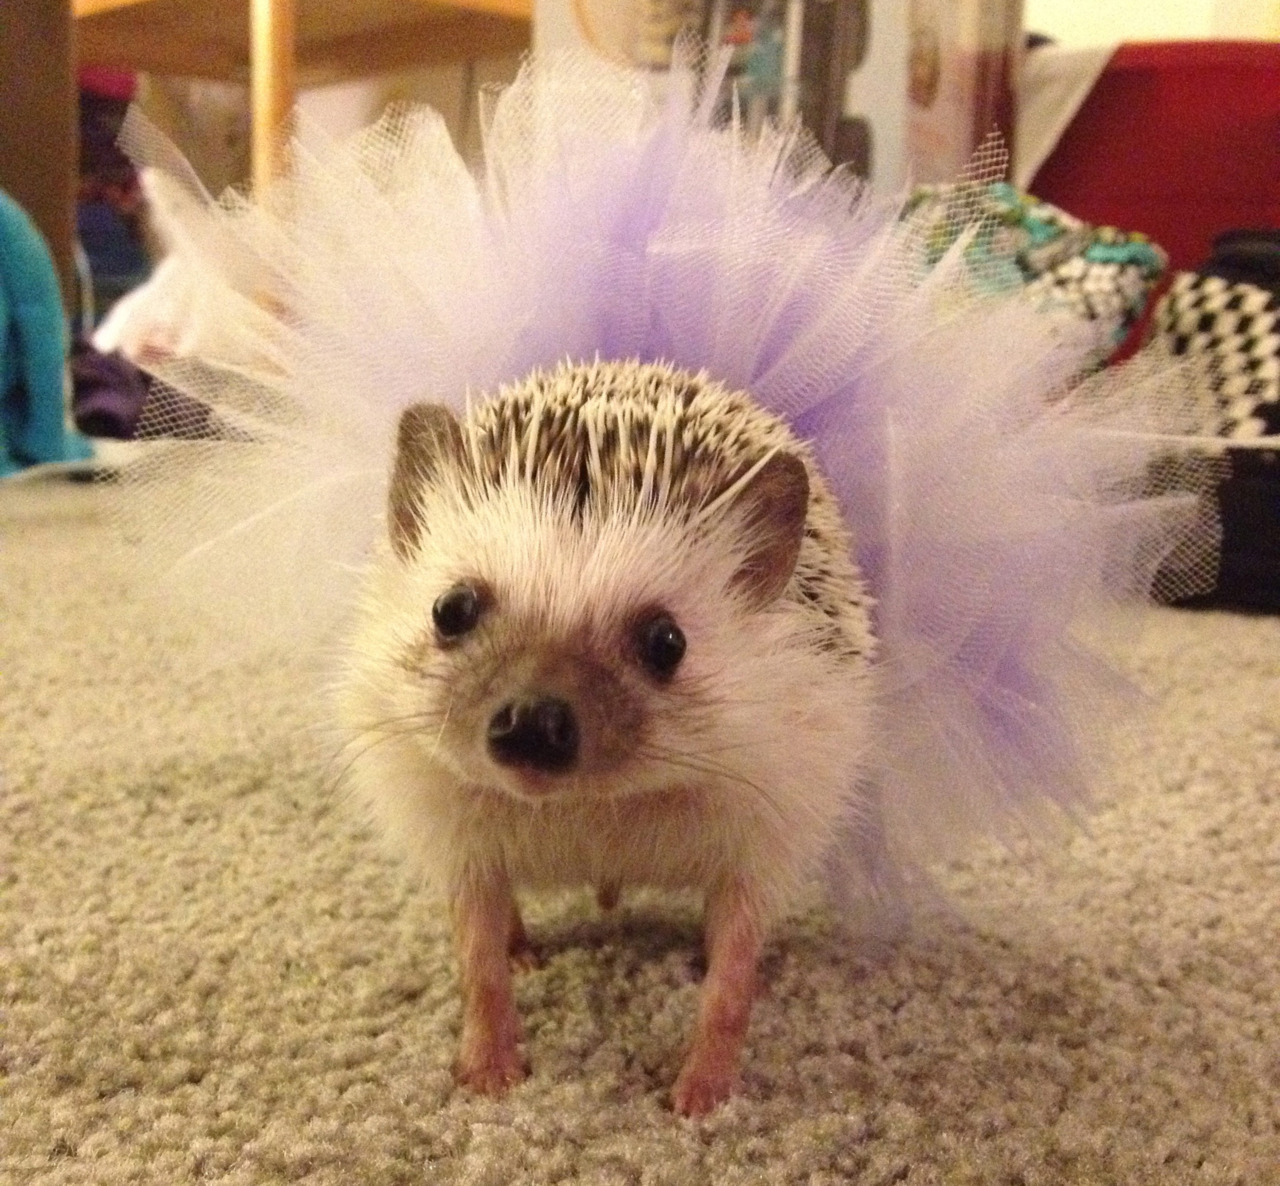 "thefluffingtonpost:  Critics Cheer for Hedgehog Ballet The New York Philharmonic, in partnership with the New York City Ballet and Lincoln Center, have successfully staged a production of Prokofiev's Romeo and Juliet with an all-hedgehog cast. And critics are raving. ""It's literally the most fun I've had at the ballet in 10 years,"" Malcolm Fitzgerald wrote in his review for DanceWorld magazine. ""It's modern, it's fresh, and — let's face it — hedgehogs in tutus are damn cute."" Submitted by Christine Schramm."